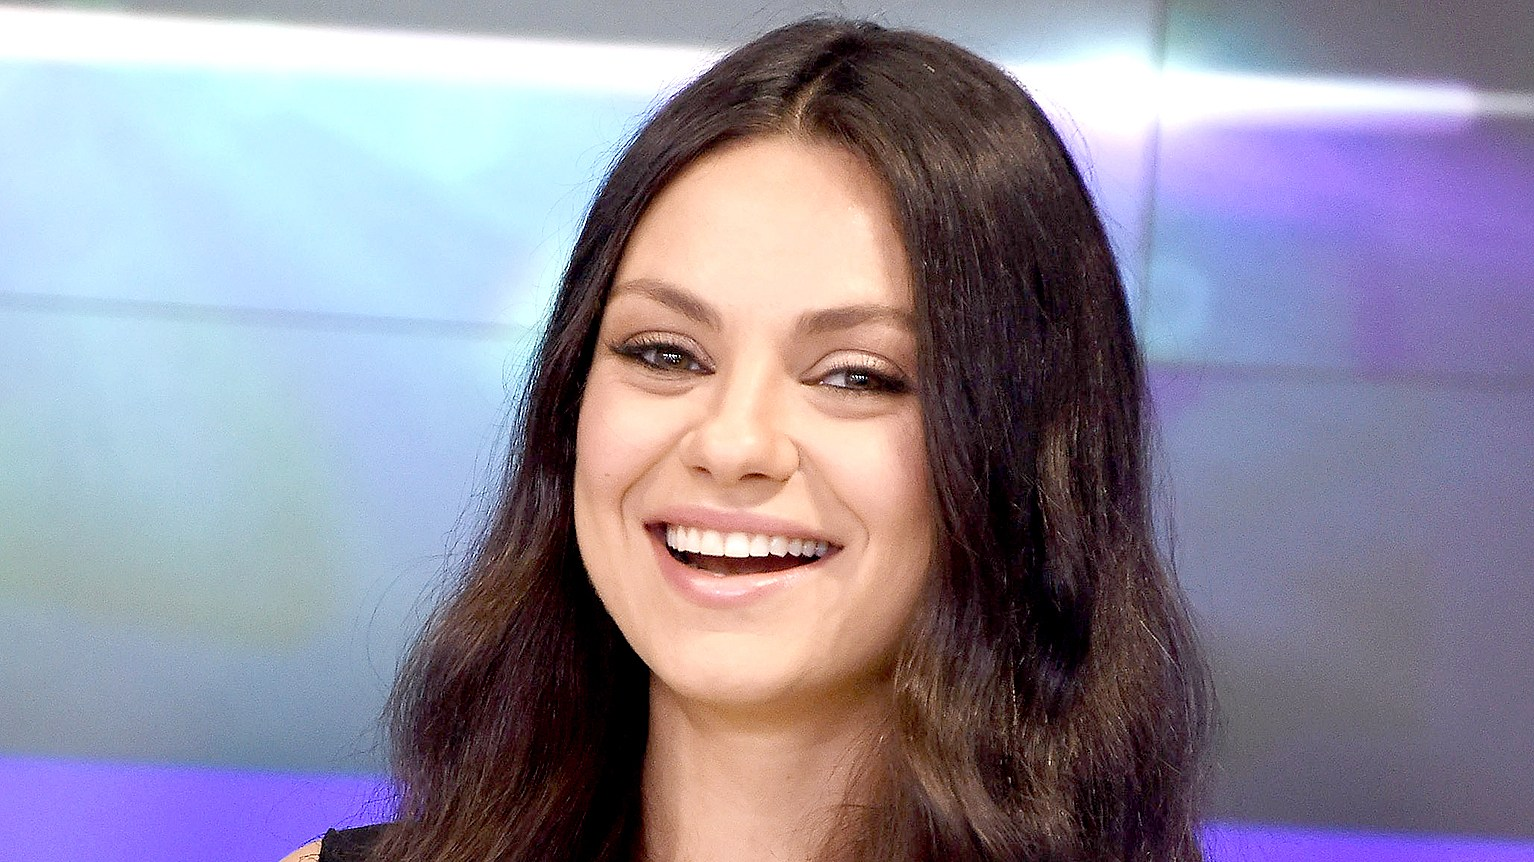 Mila Kunis rings the closing bell at NASDAQ on July 28, 2016 in New York City.